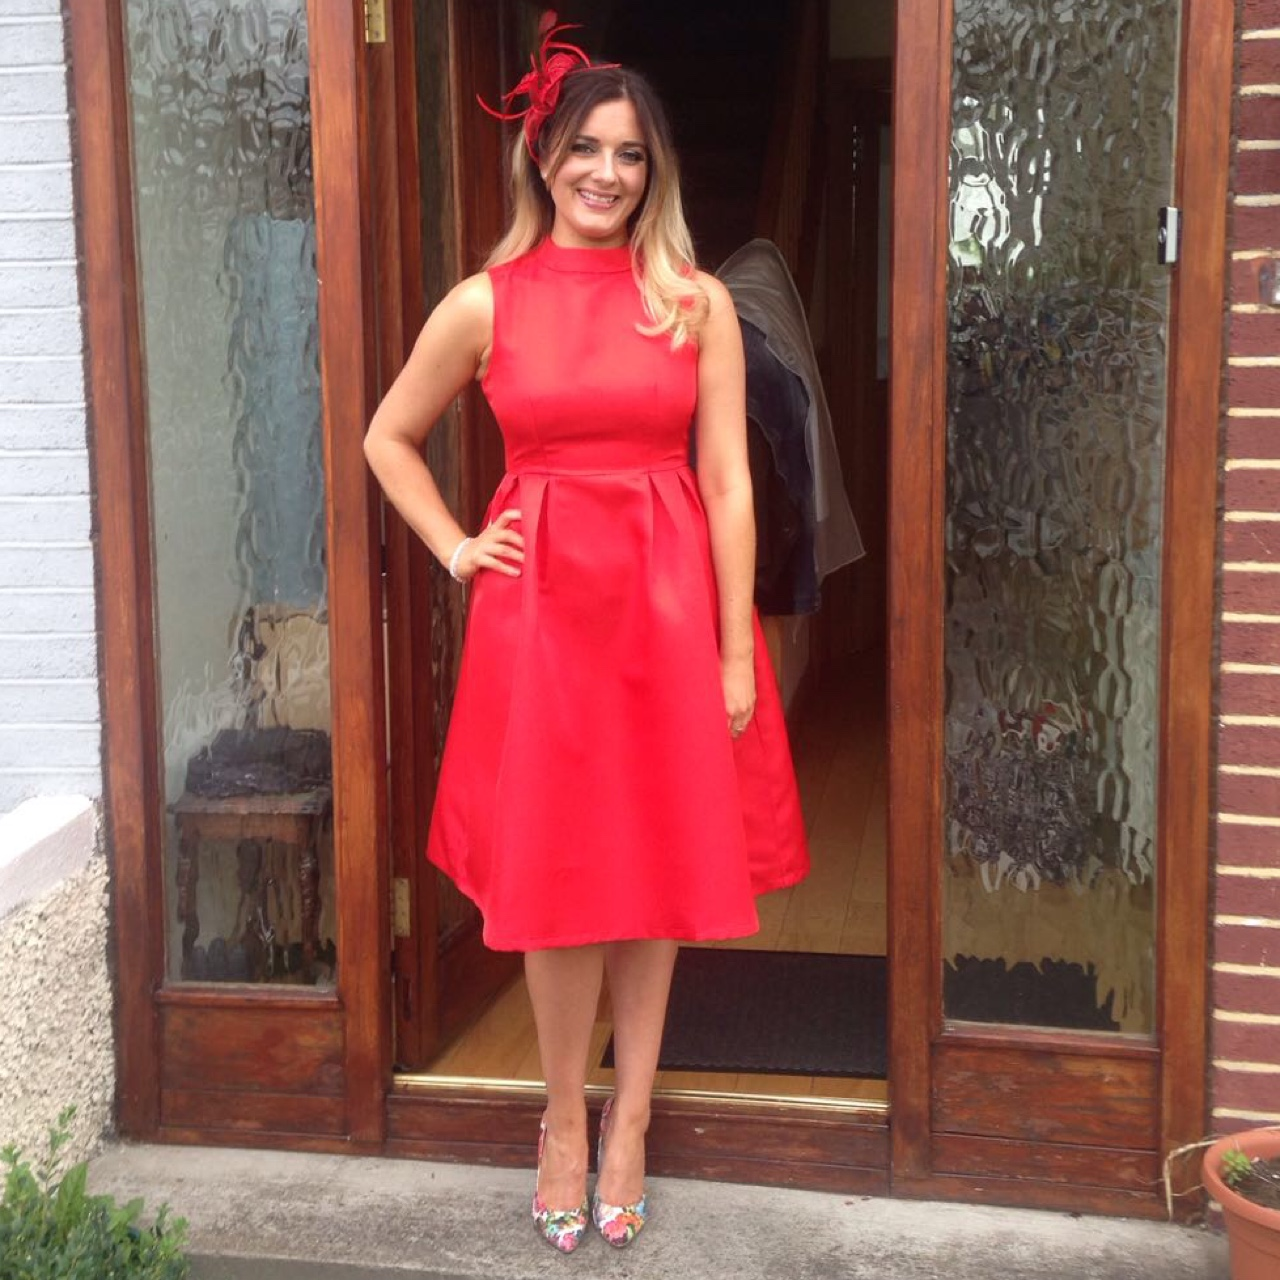 Wedding Guest Outfit Dress And Fascinator Red High Depop